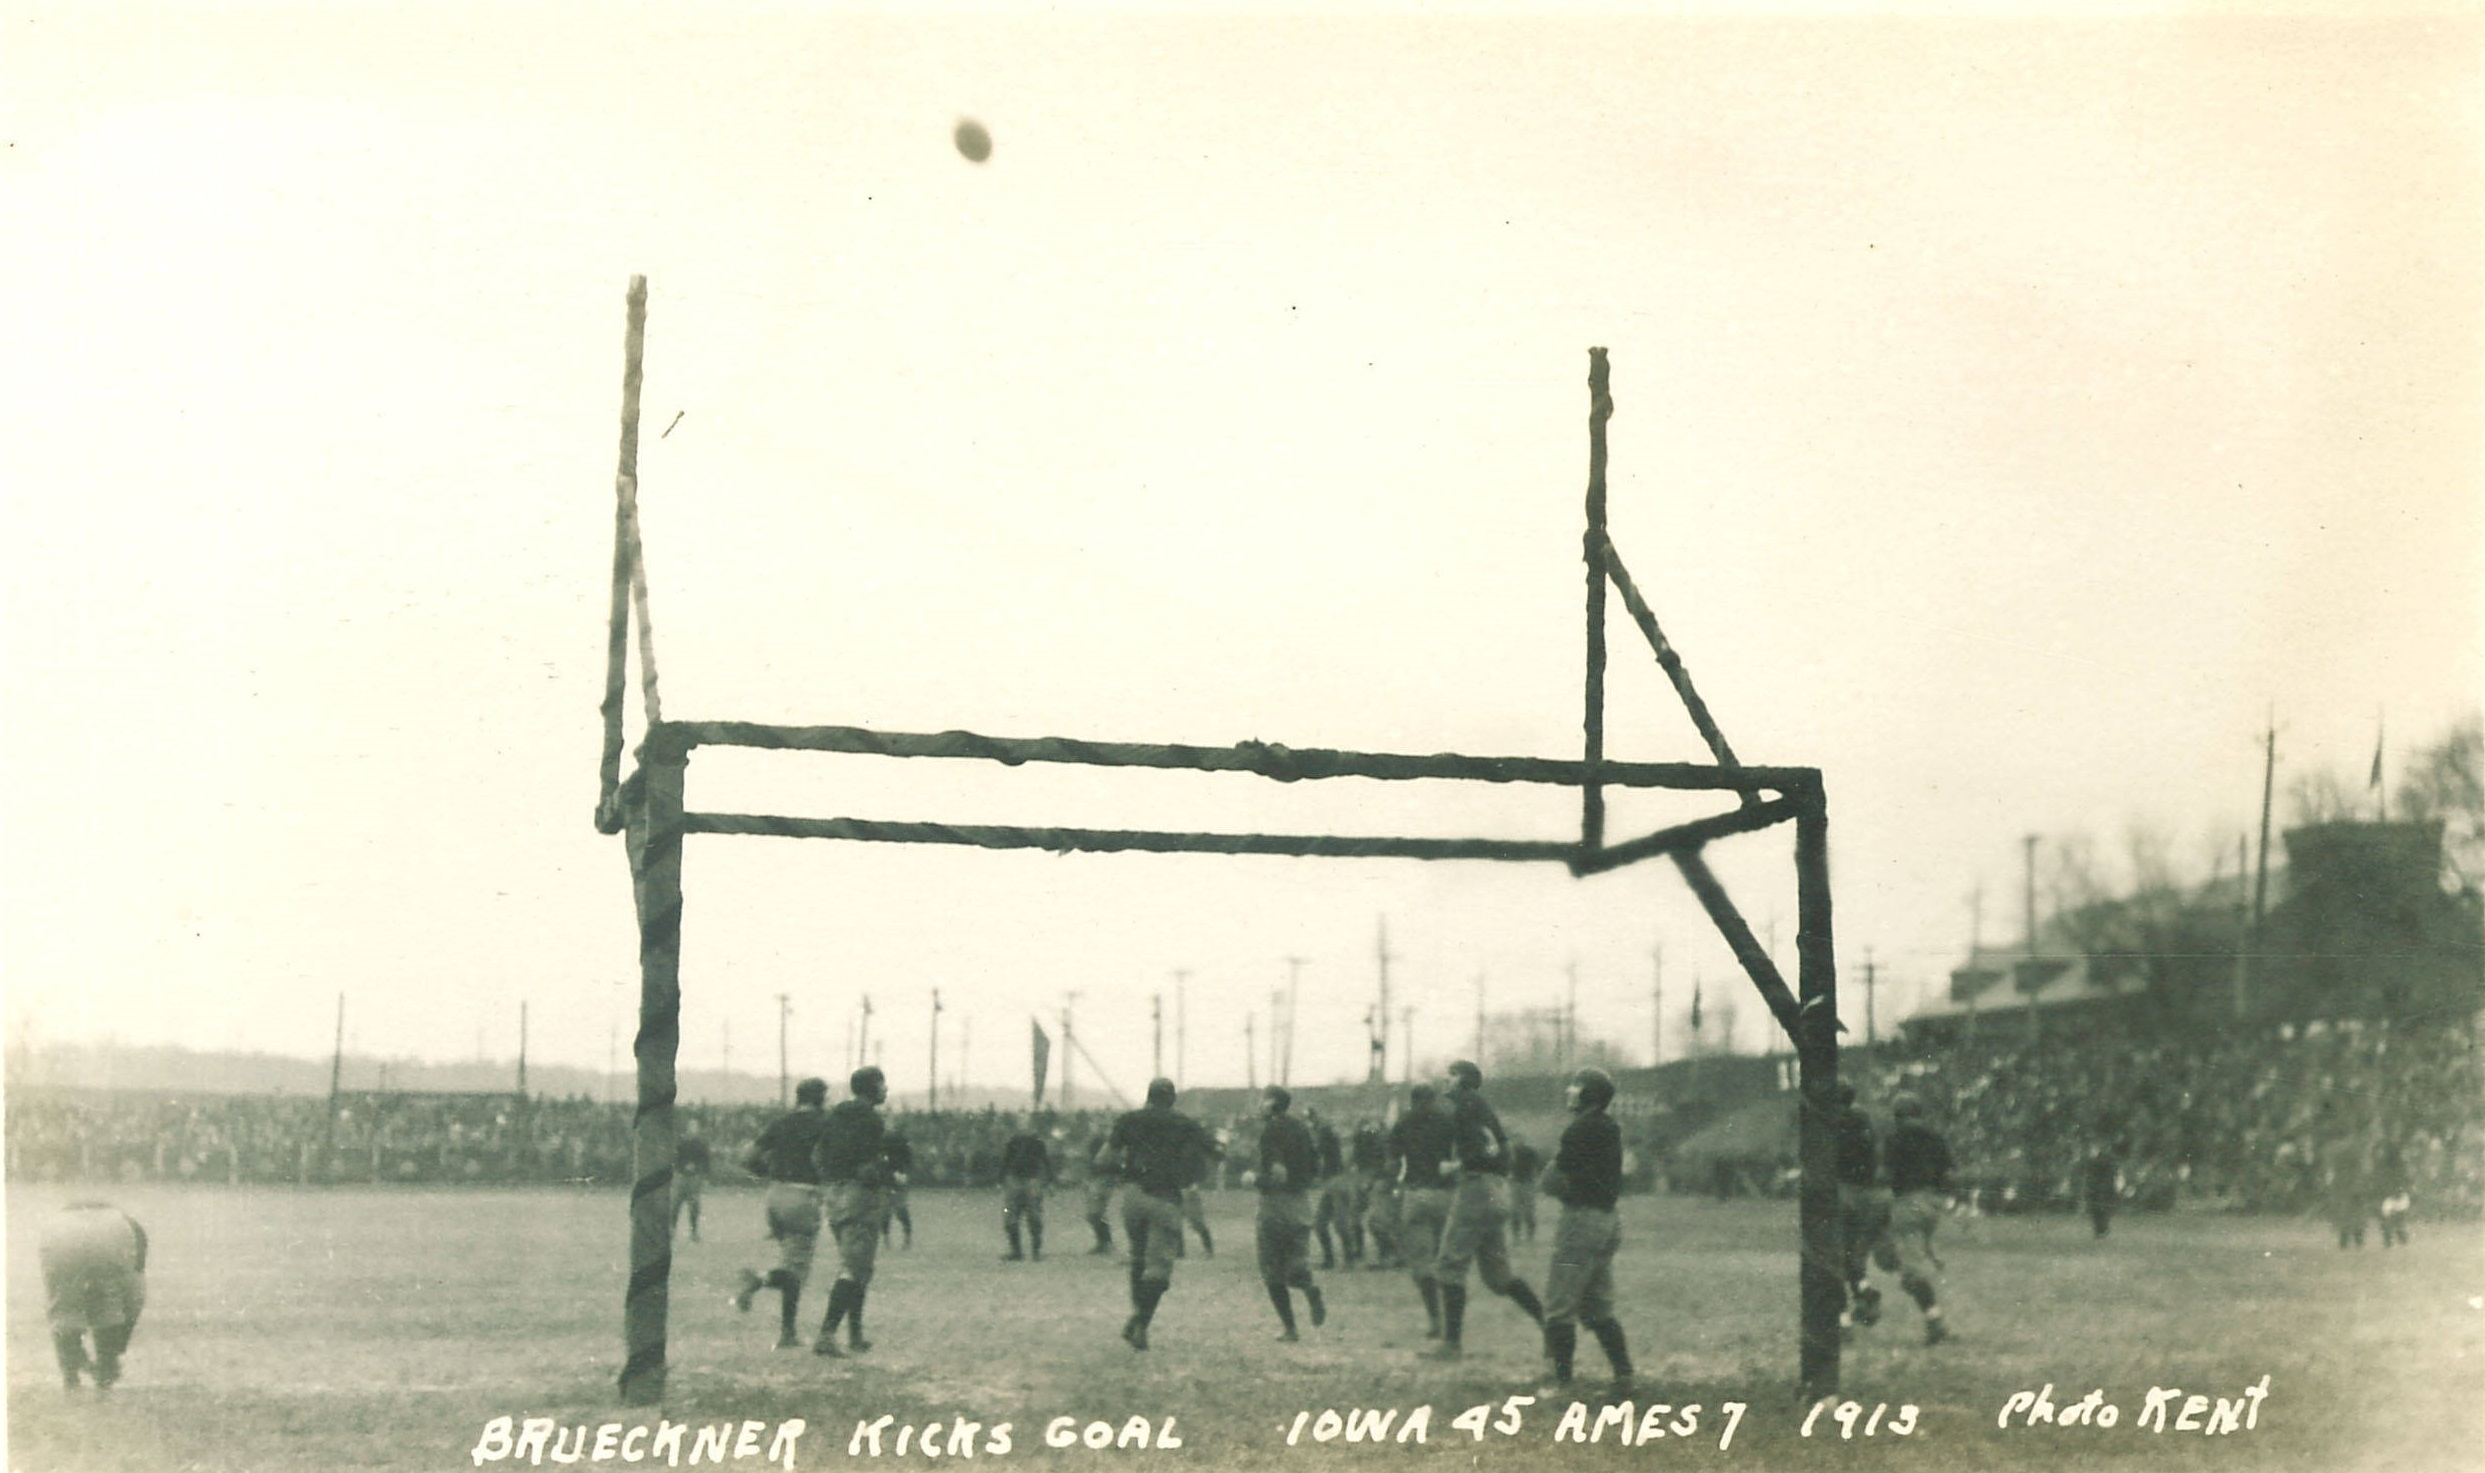 1918 football game fieldgoal